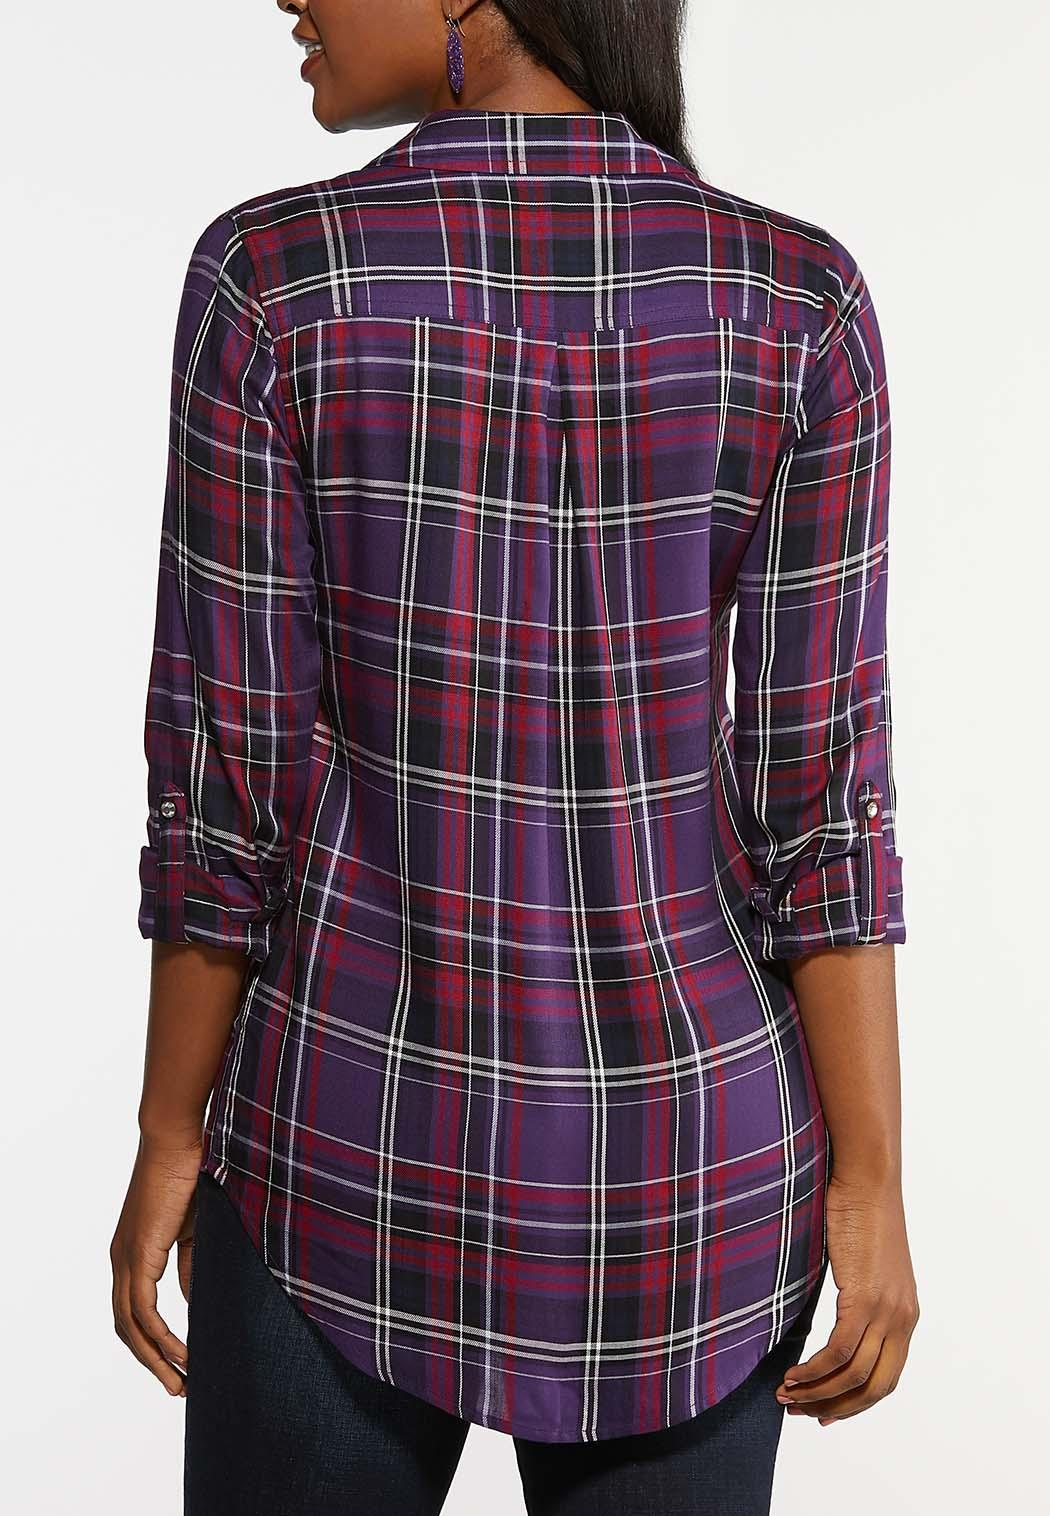 Bling Plaid Top (Item #44037883)